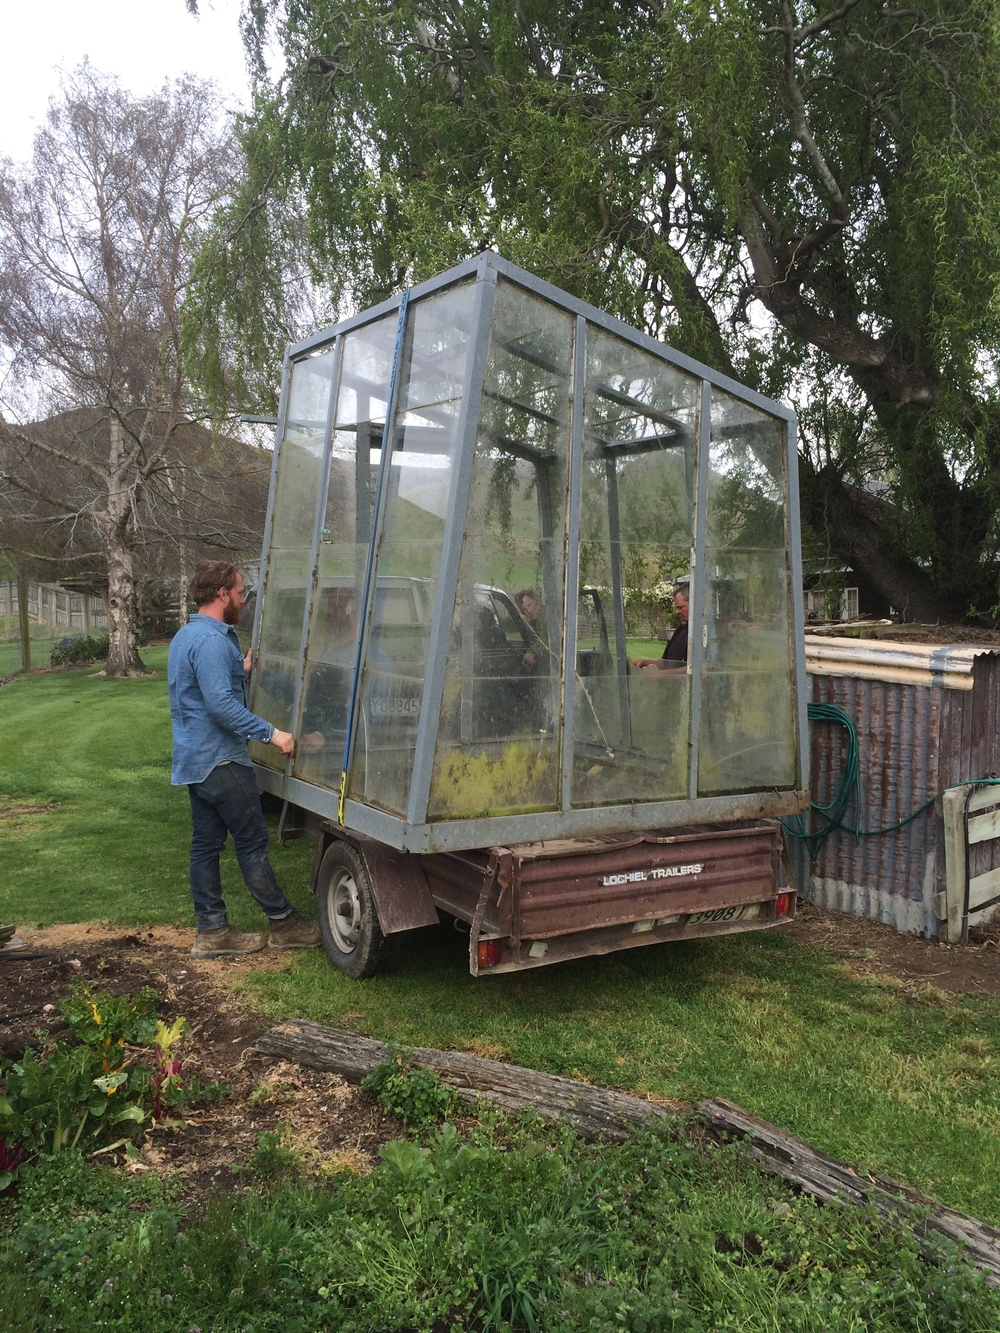 Karls trailer got a lot of use...picking up an old greenhouse from the neighbor